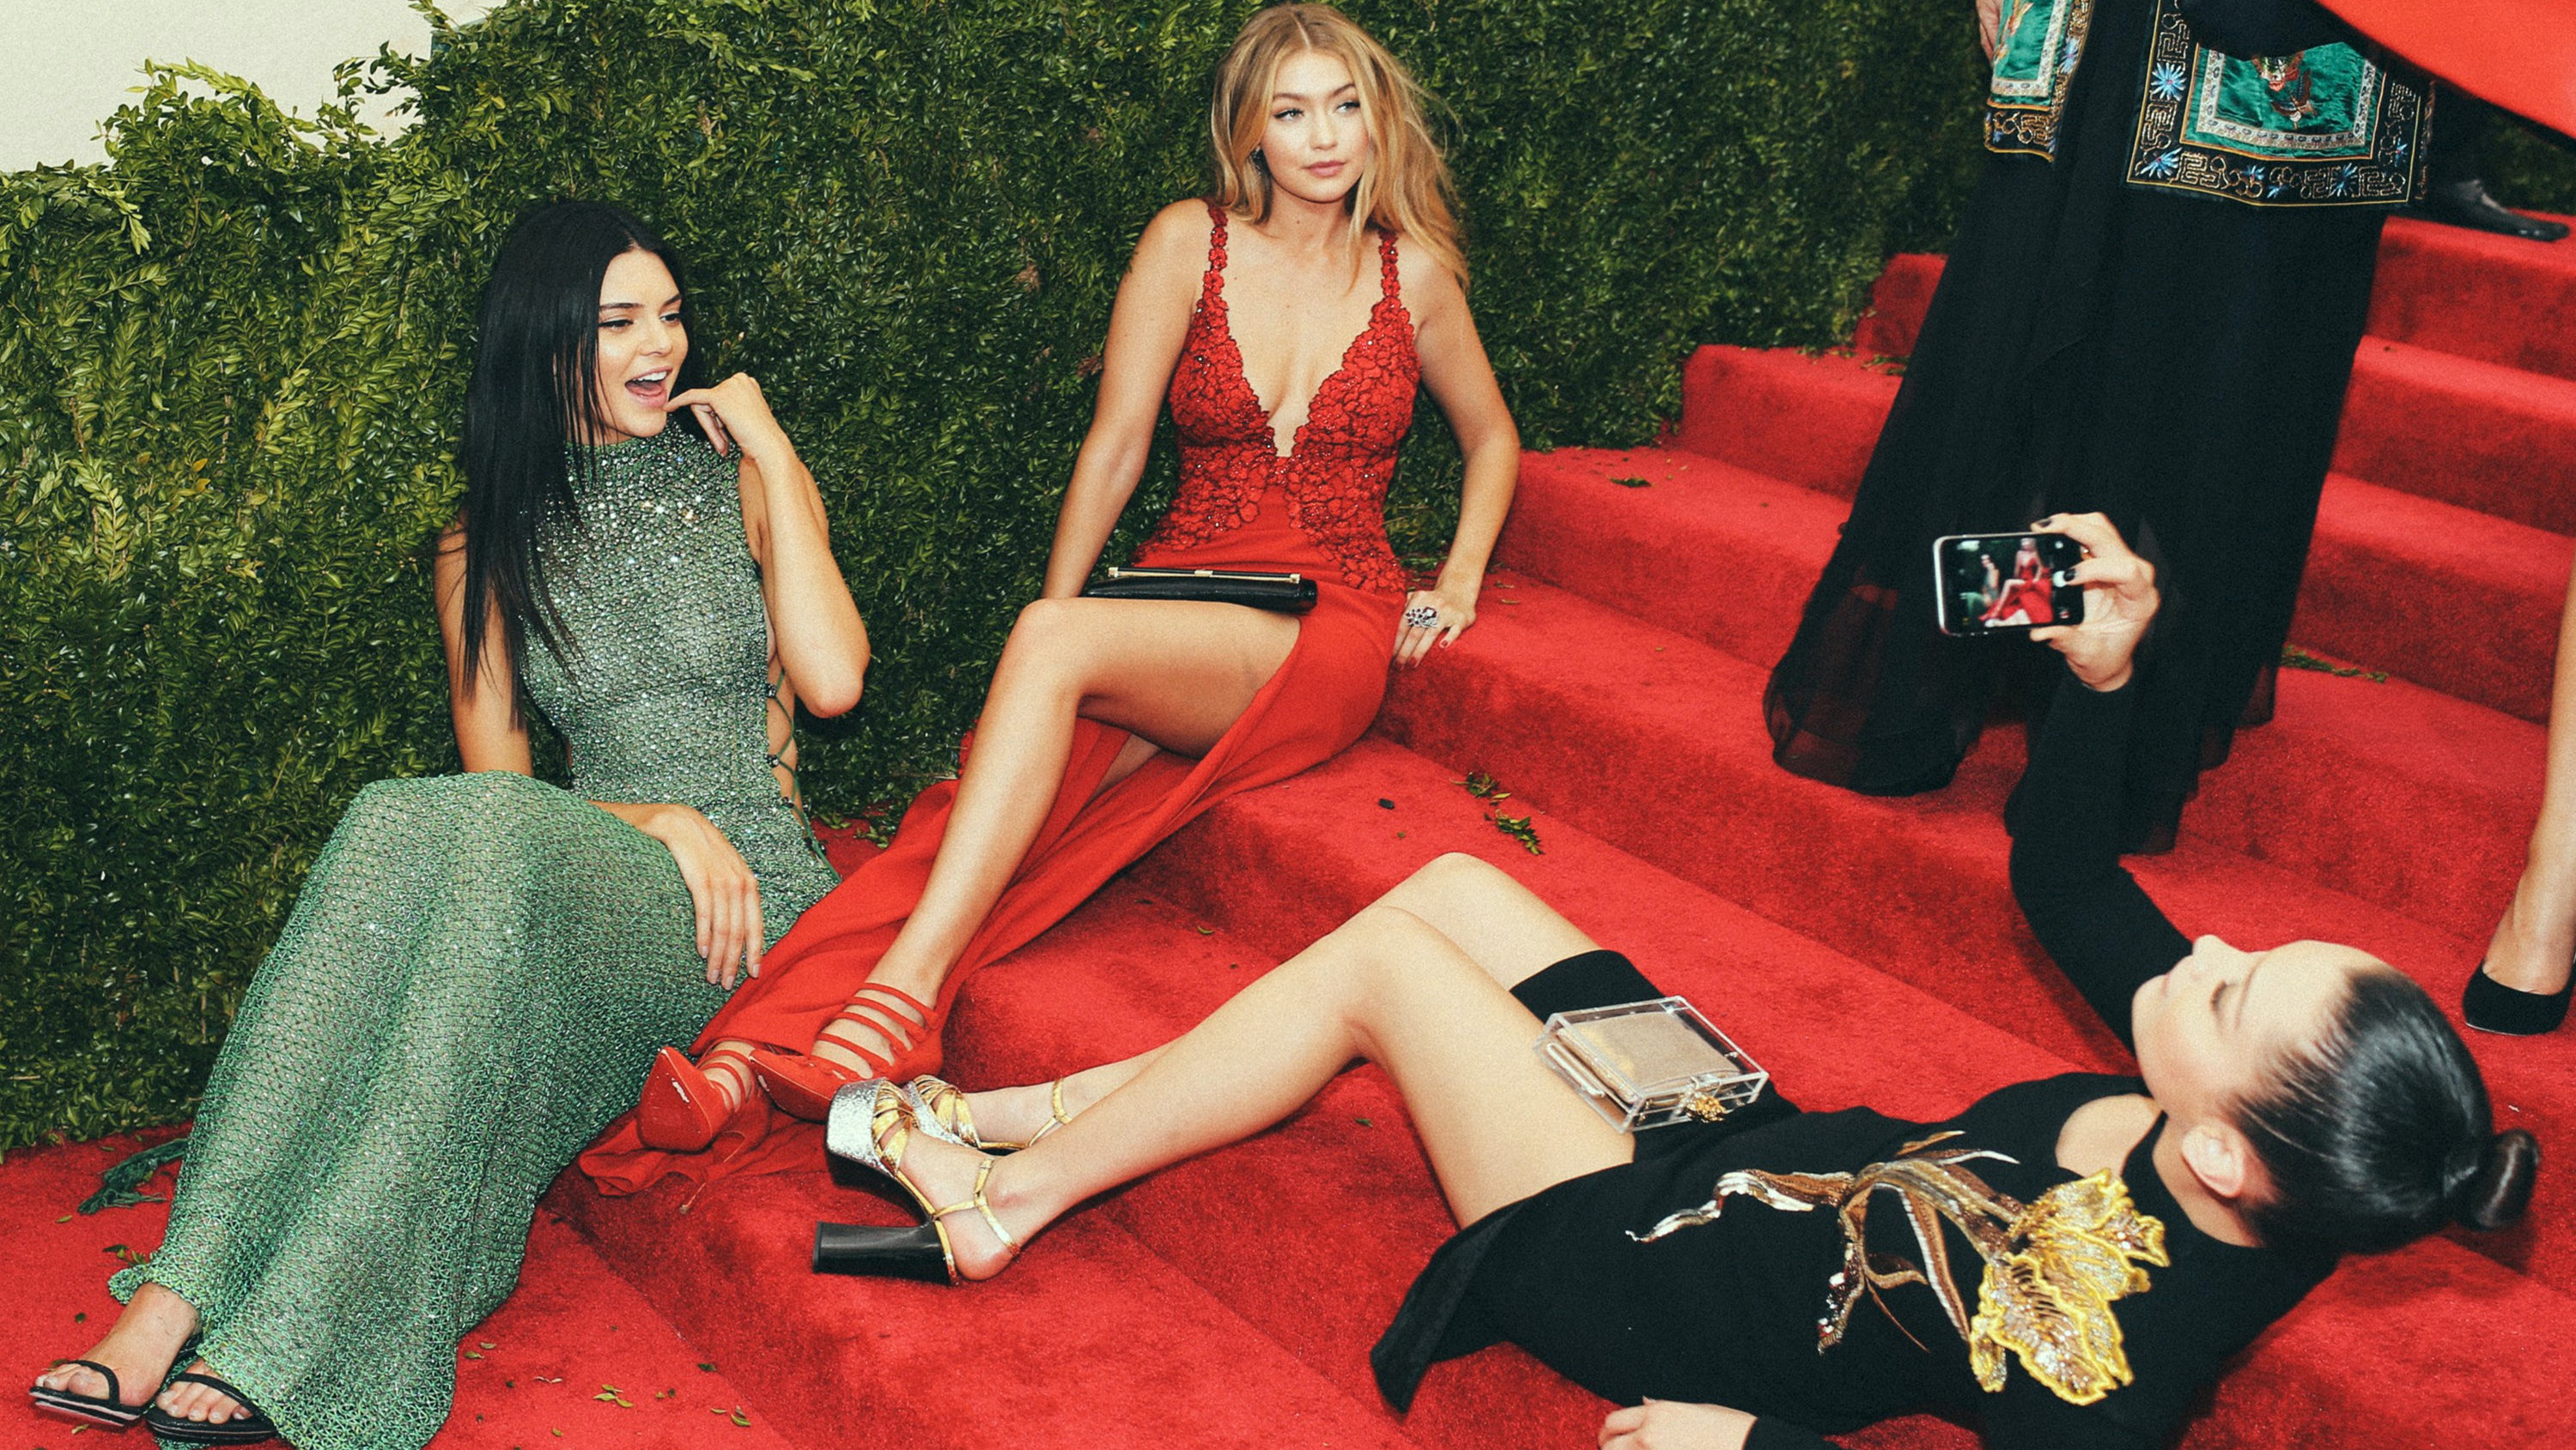 Bella Hadid takes a picture of Kendall Jenner and Gigi Hadid on her phone at the 2015 Met Gala | Source: Phil Oh